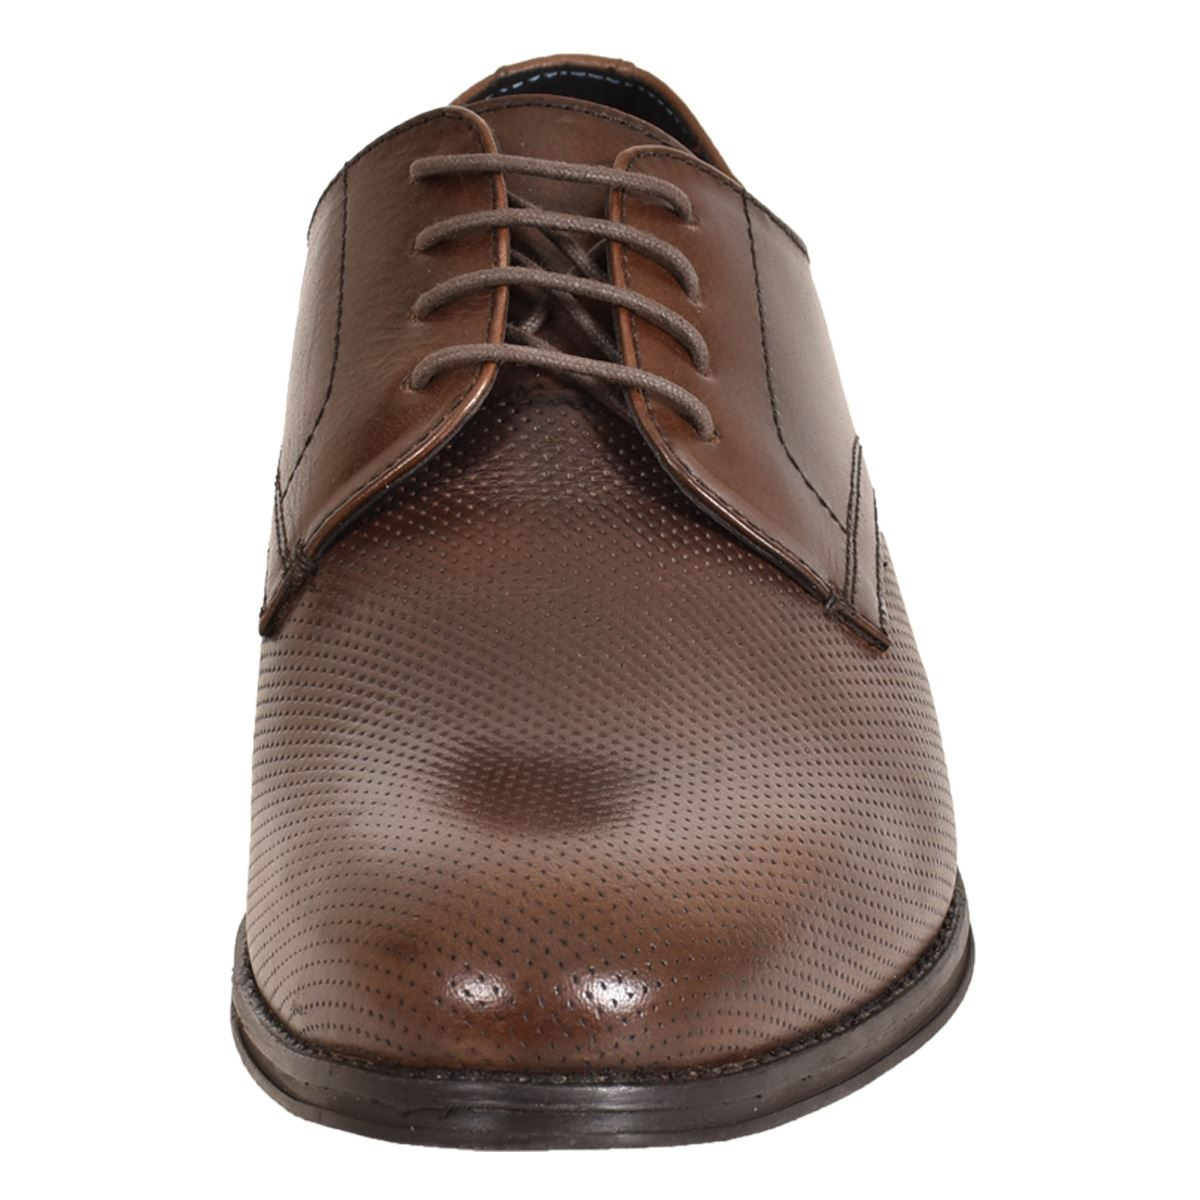 Mens-UK-Style-Leather-Lining-Formal-Office-Wedding-Smart-Work-Brogue-Shoes thumbnail 48